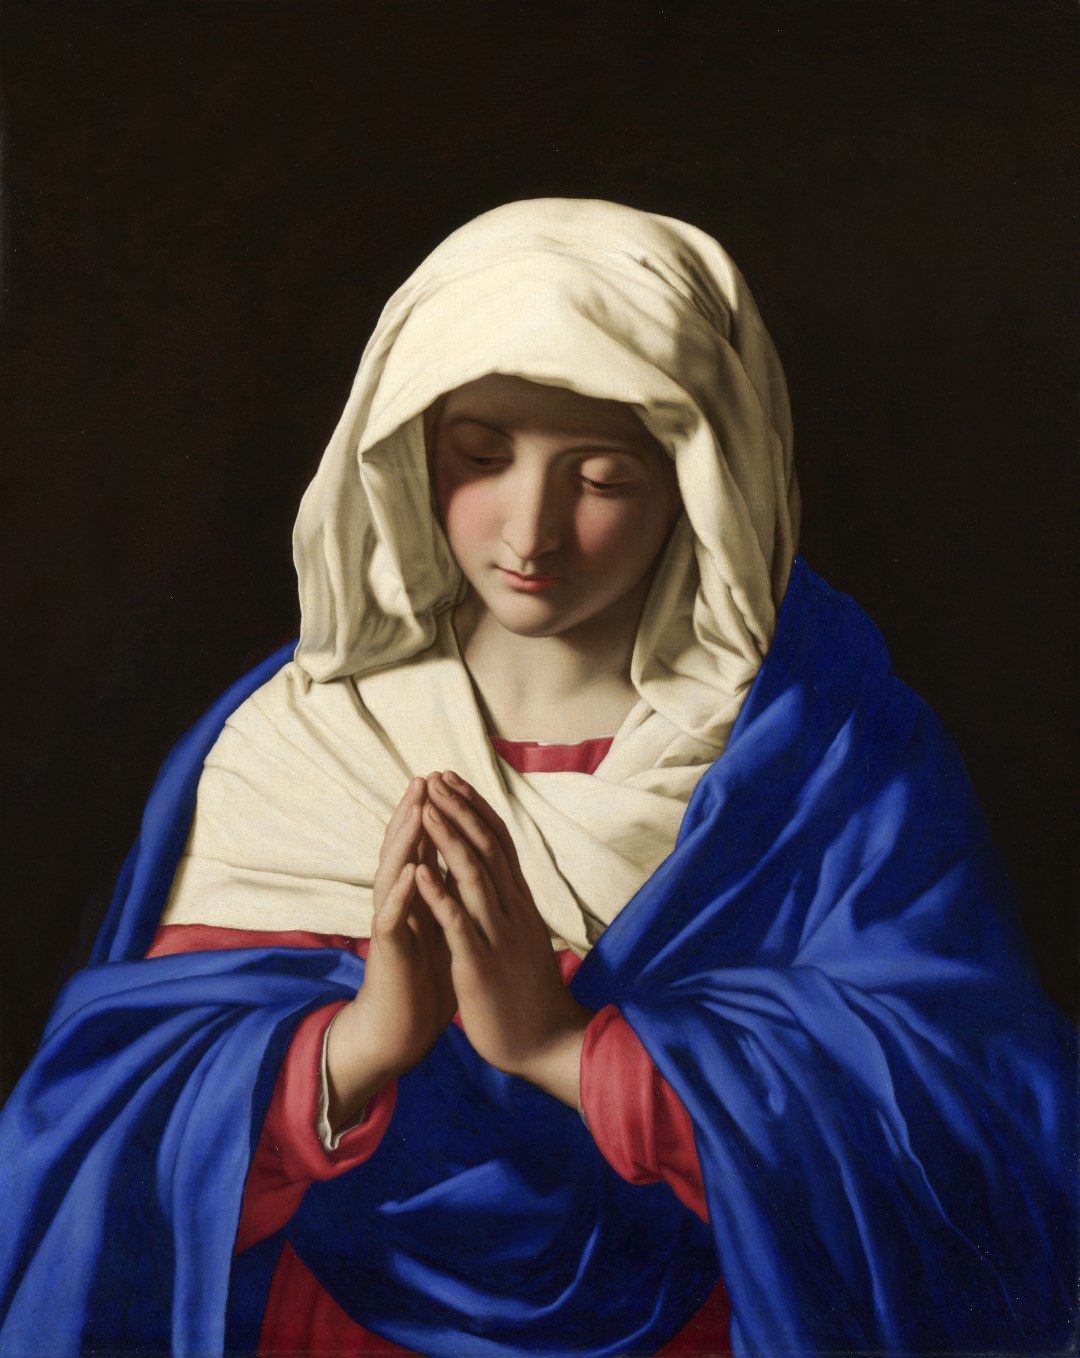 Image of Mary the mother of Jesus from Wikipedia